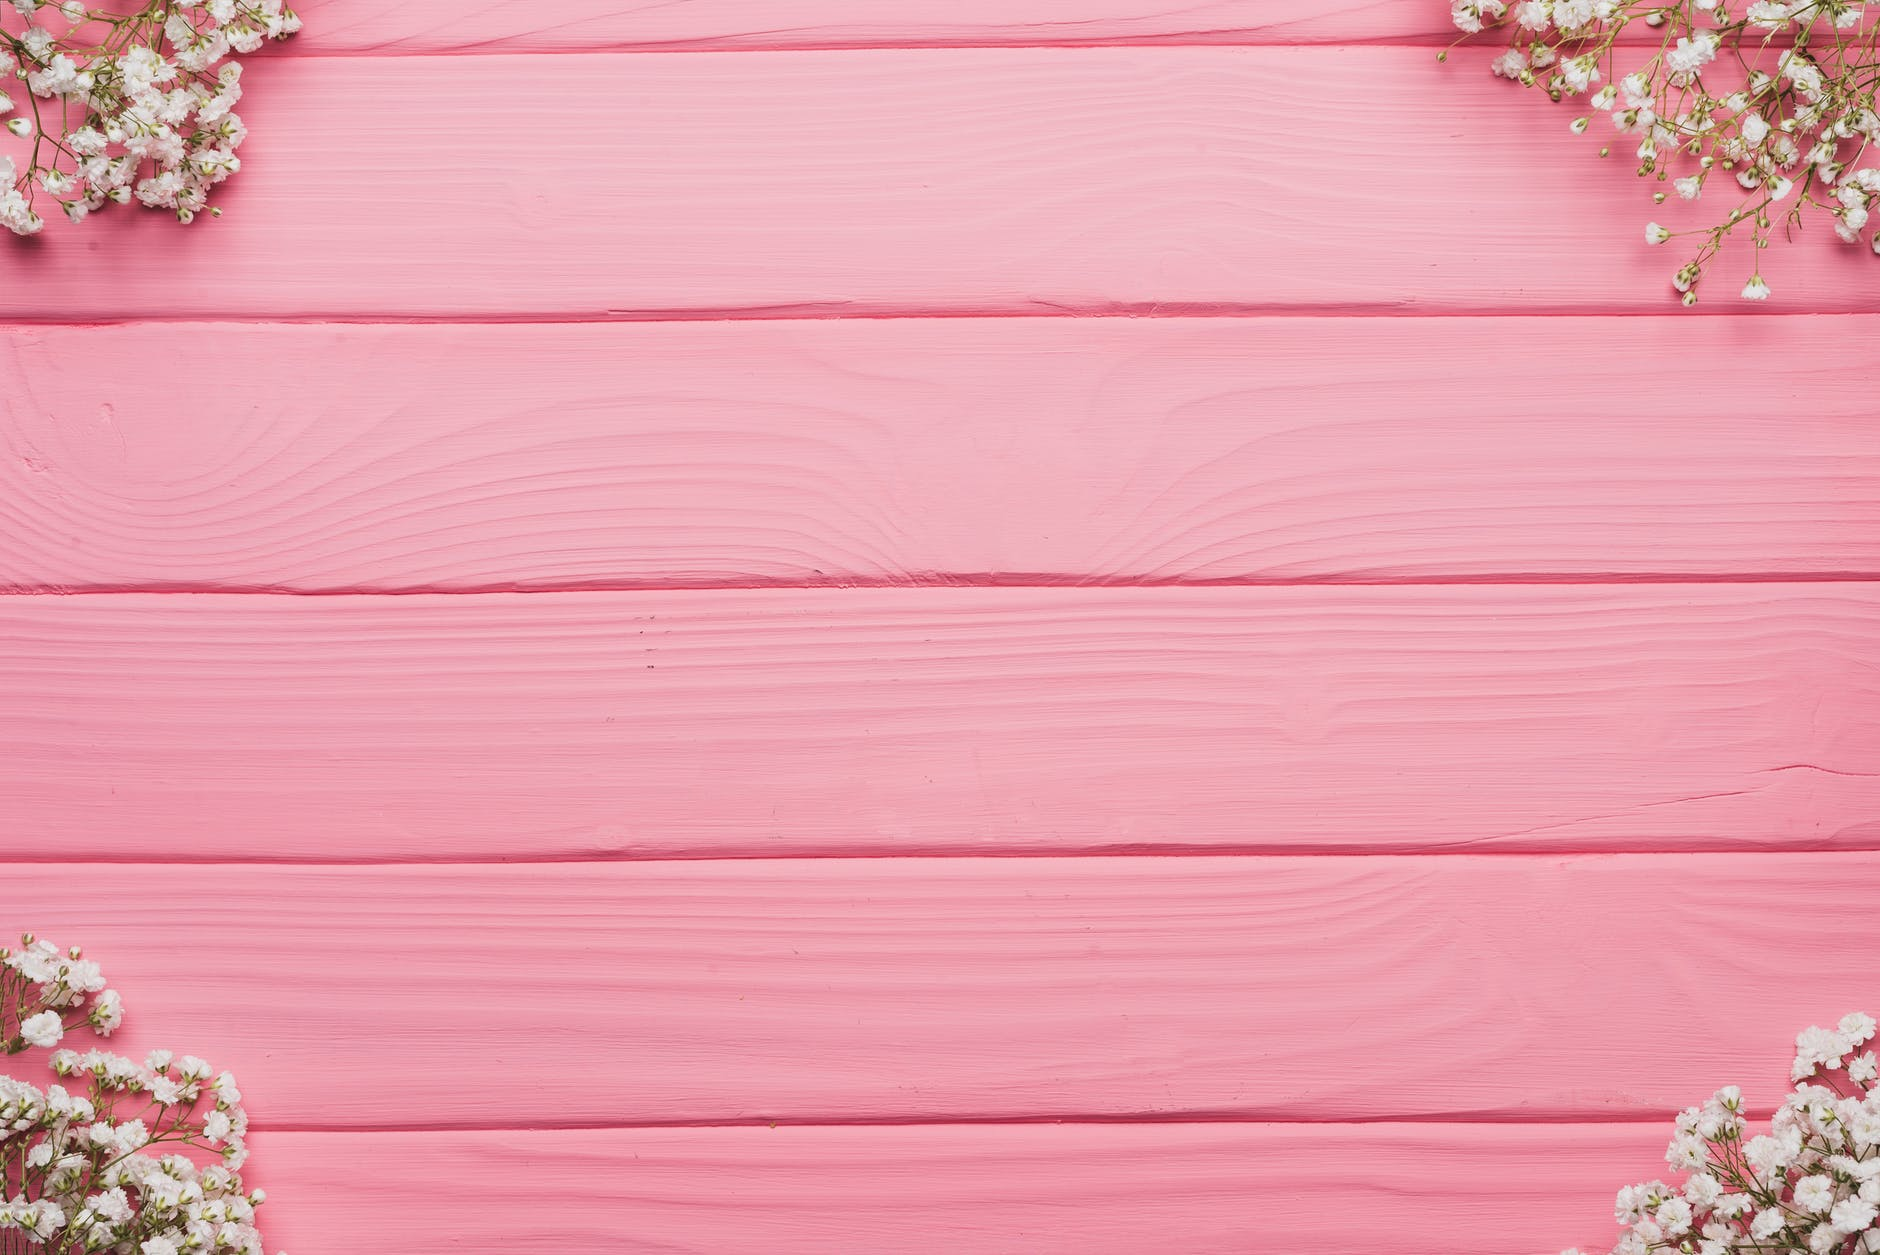 1880x1255 - Background Pink 38